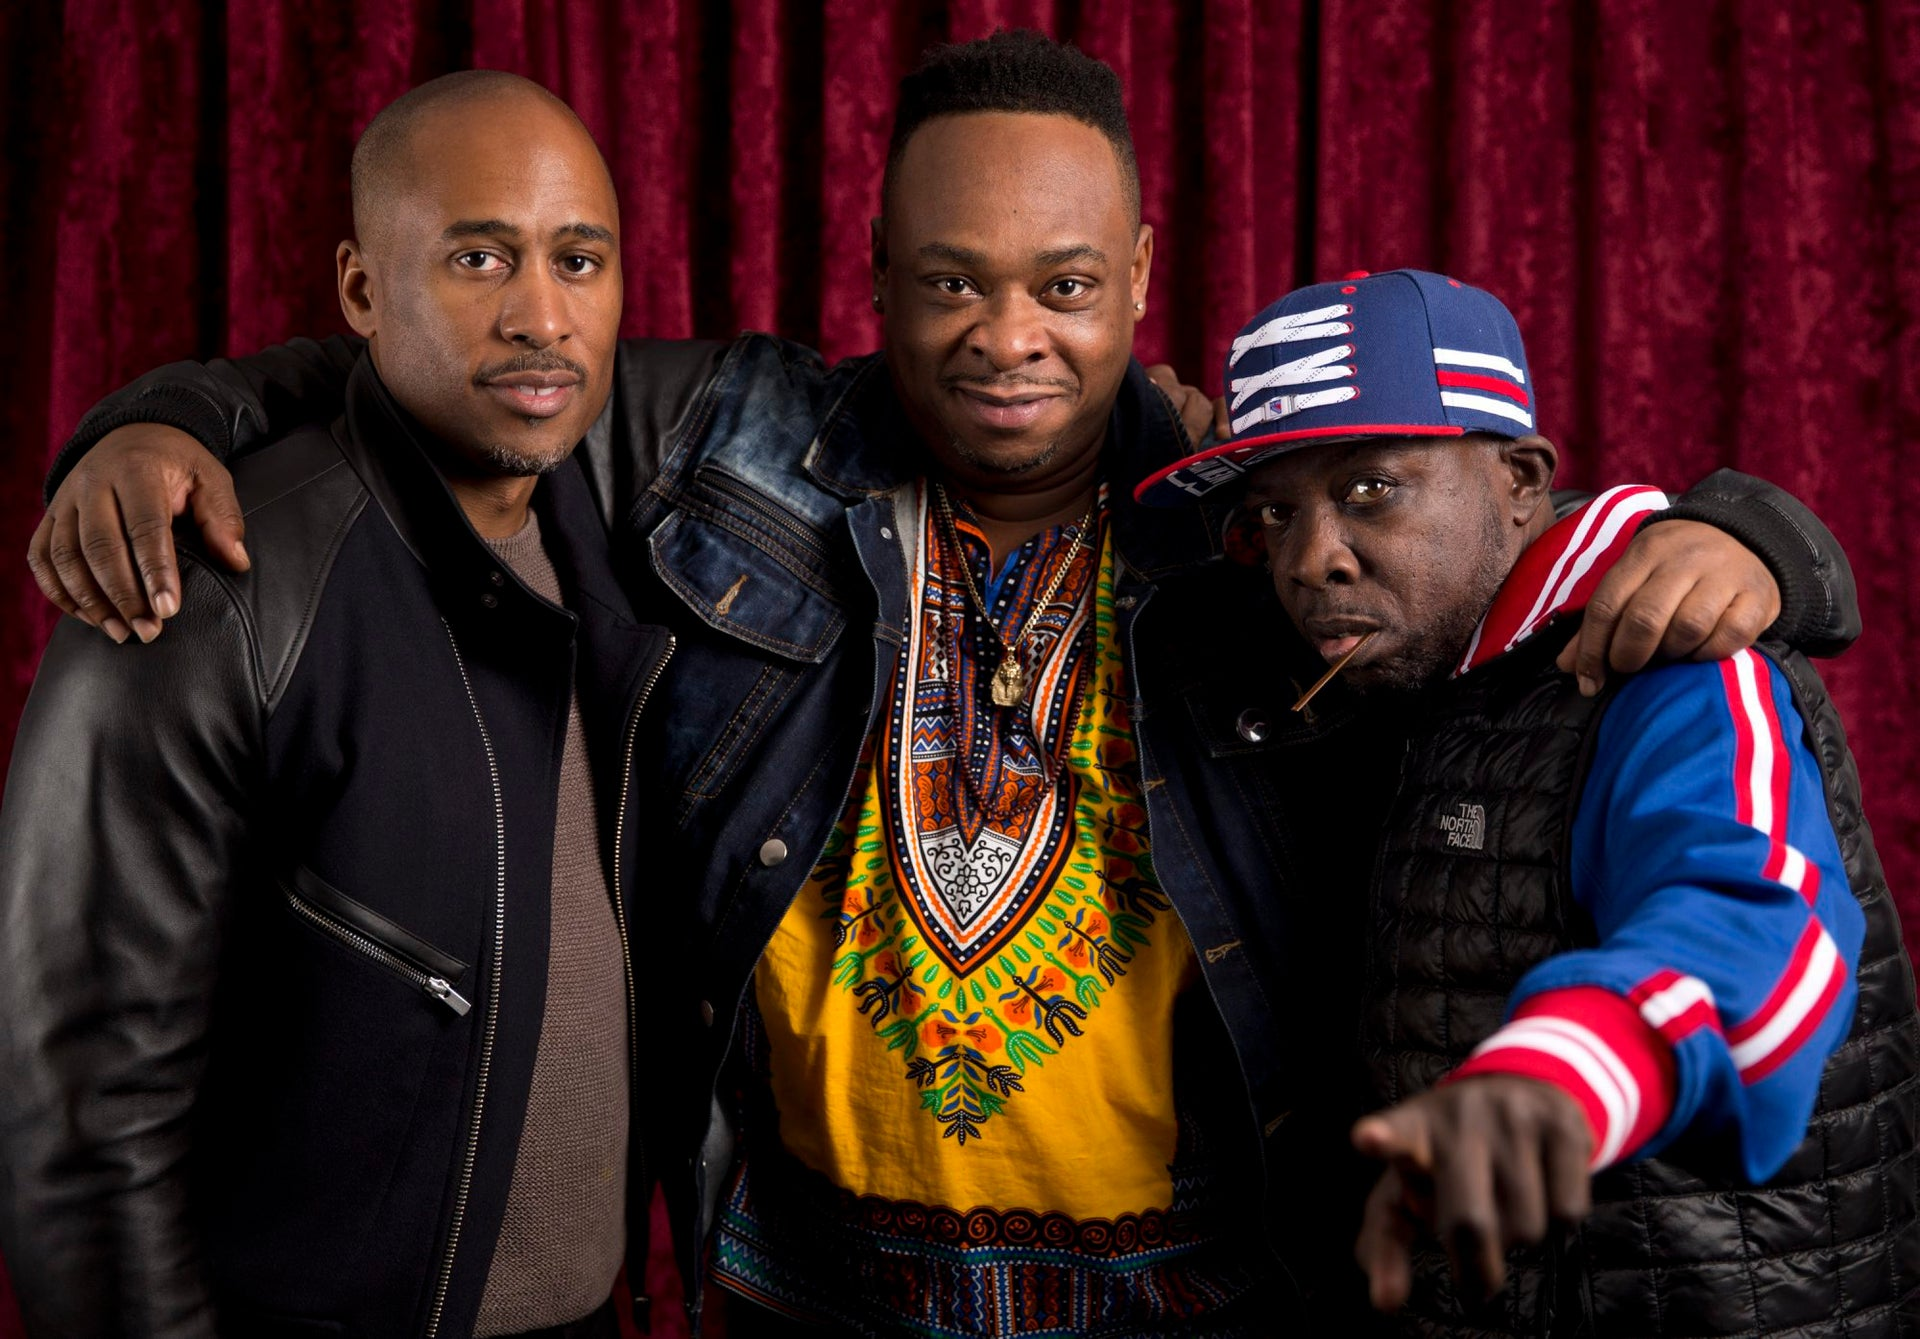 Ali Shaheed Muhammad, left, Jarobi White, and Malik Isaac Taylor aka Phife Dawg of A Tribe Called Quest pose for a portrait at Sirius XM studios in New York.